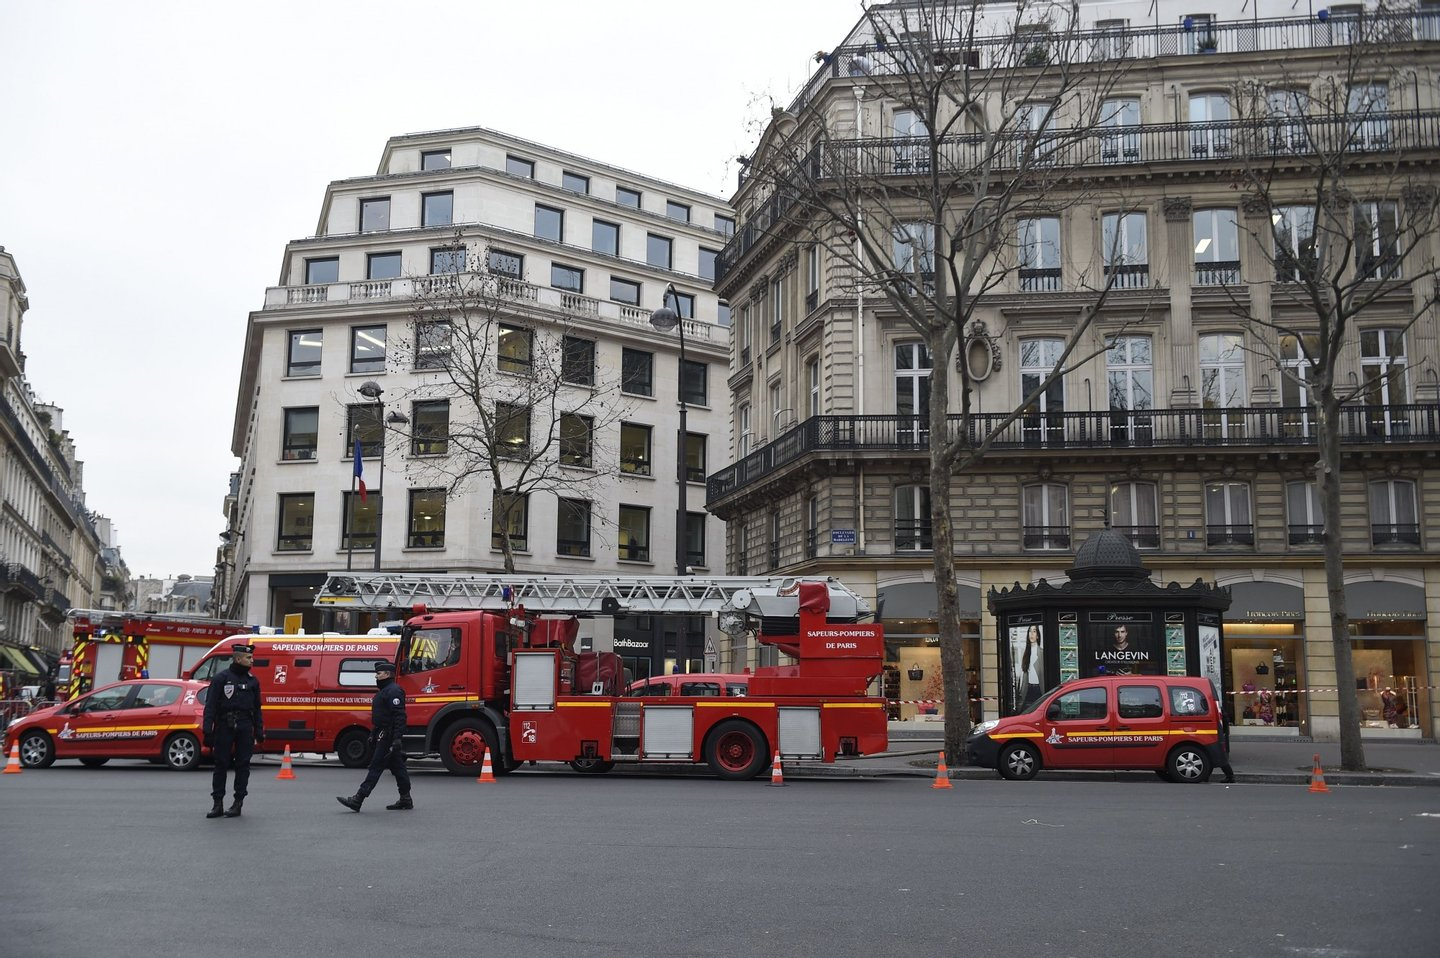 """French police officers stand guard next to fire trucks parked near the Ritz Hotel in Paris after a fire broke out at the landmark hotel on January 19, 2016. A major fire broke out at the landmark Paris Ritz hotel, which is closed for renovations, the fire service said. The blaze is on the """"top floor of the building and the roof"""", a fire service spokesman said. AFP PHOTO / LIONEL BONAVENTURE / AFP / LIONEL BONAVENTURE (Photo credit should read LIONEL BONAVENTURE/AFP/Getty Images)"""